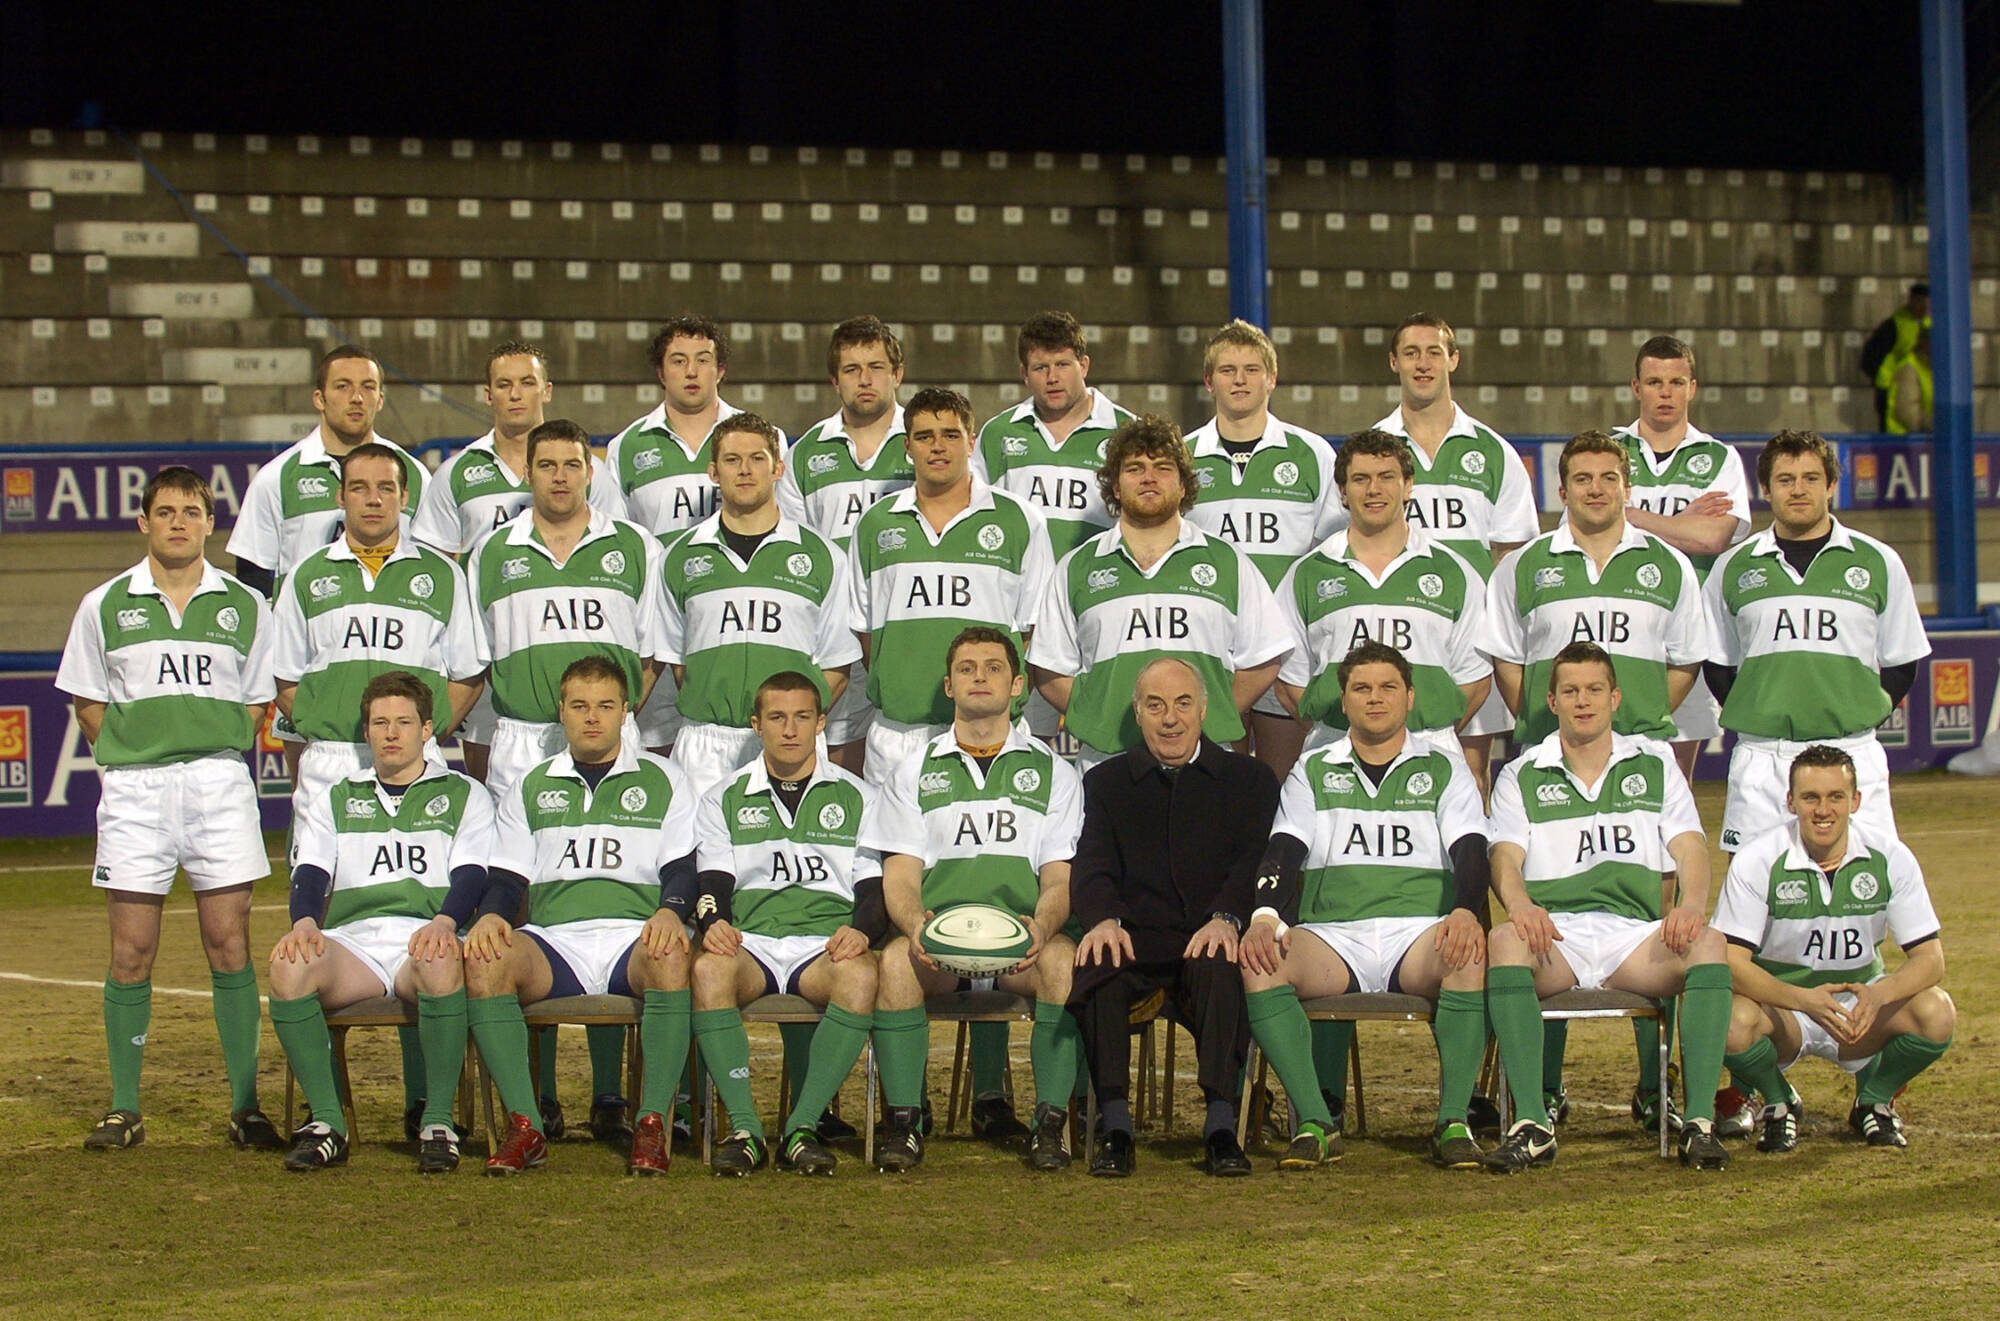 The first Ireland Club Team in Donnybrook in 2006 Mandatory Credit ©INPHO/Billy Stickland